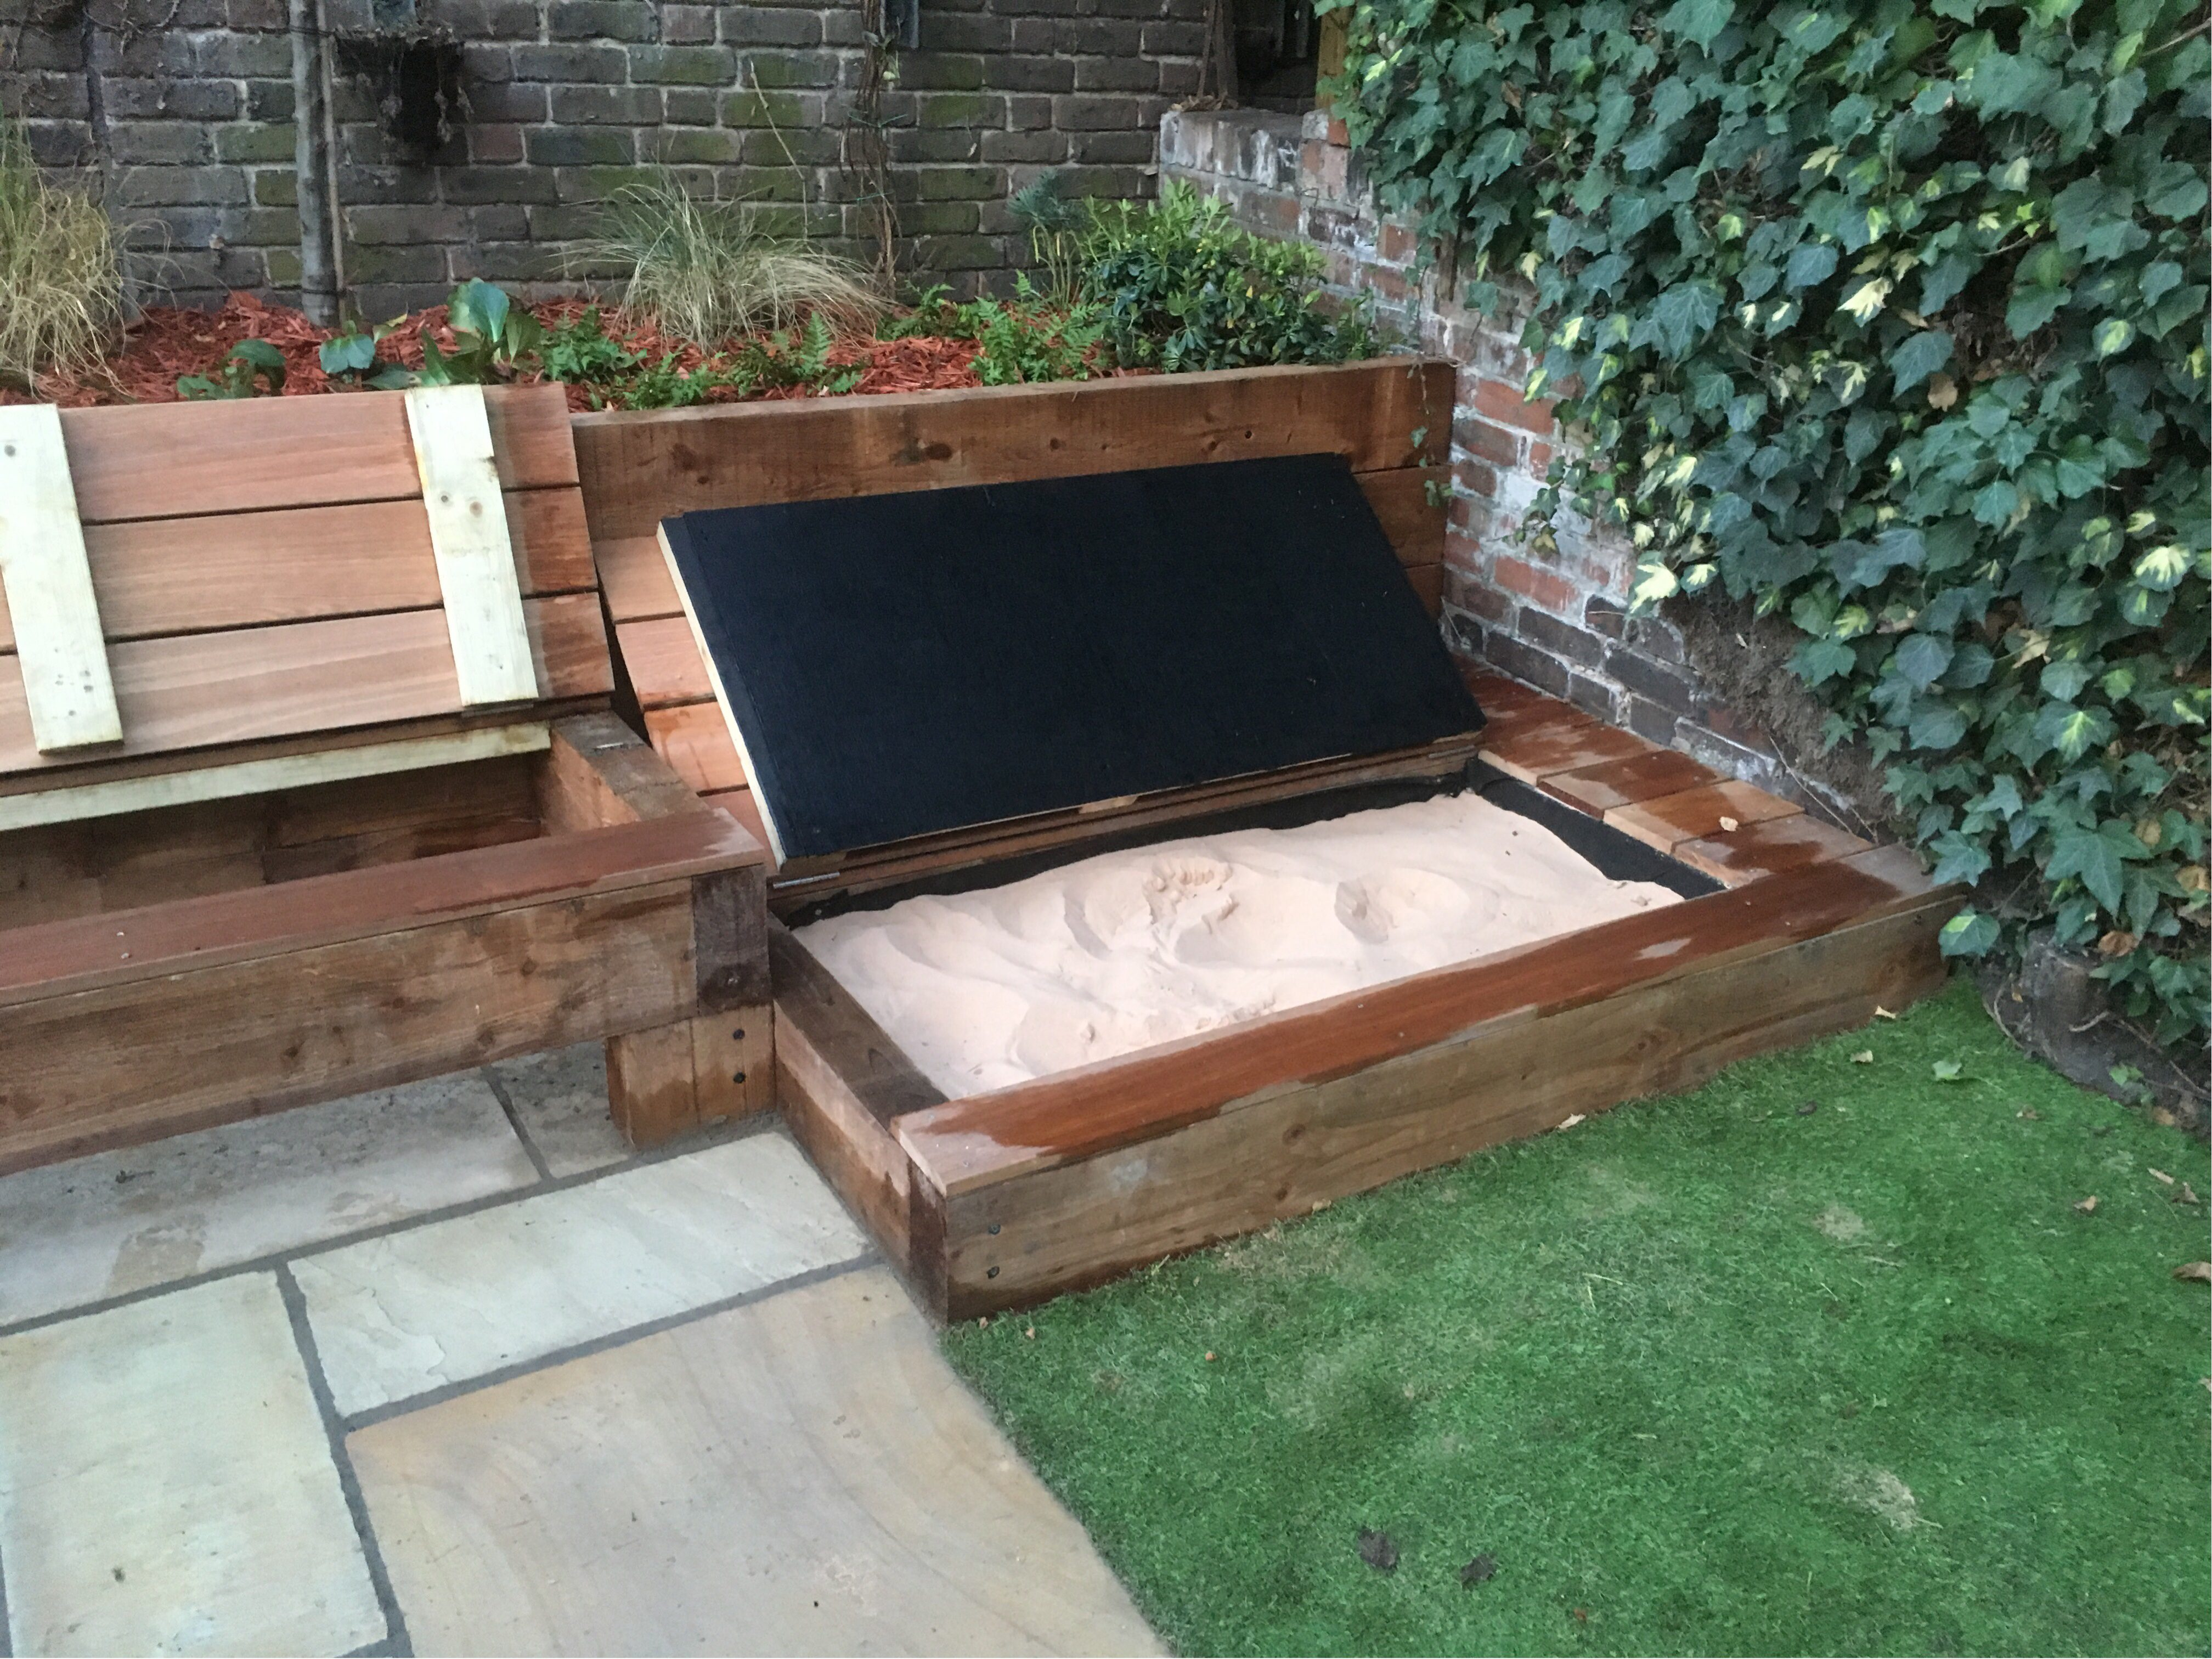 Small garden design ideas - make the most of everything